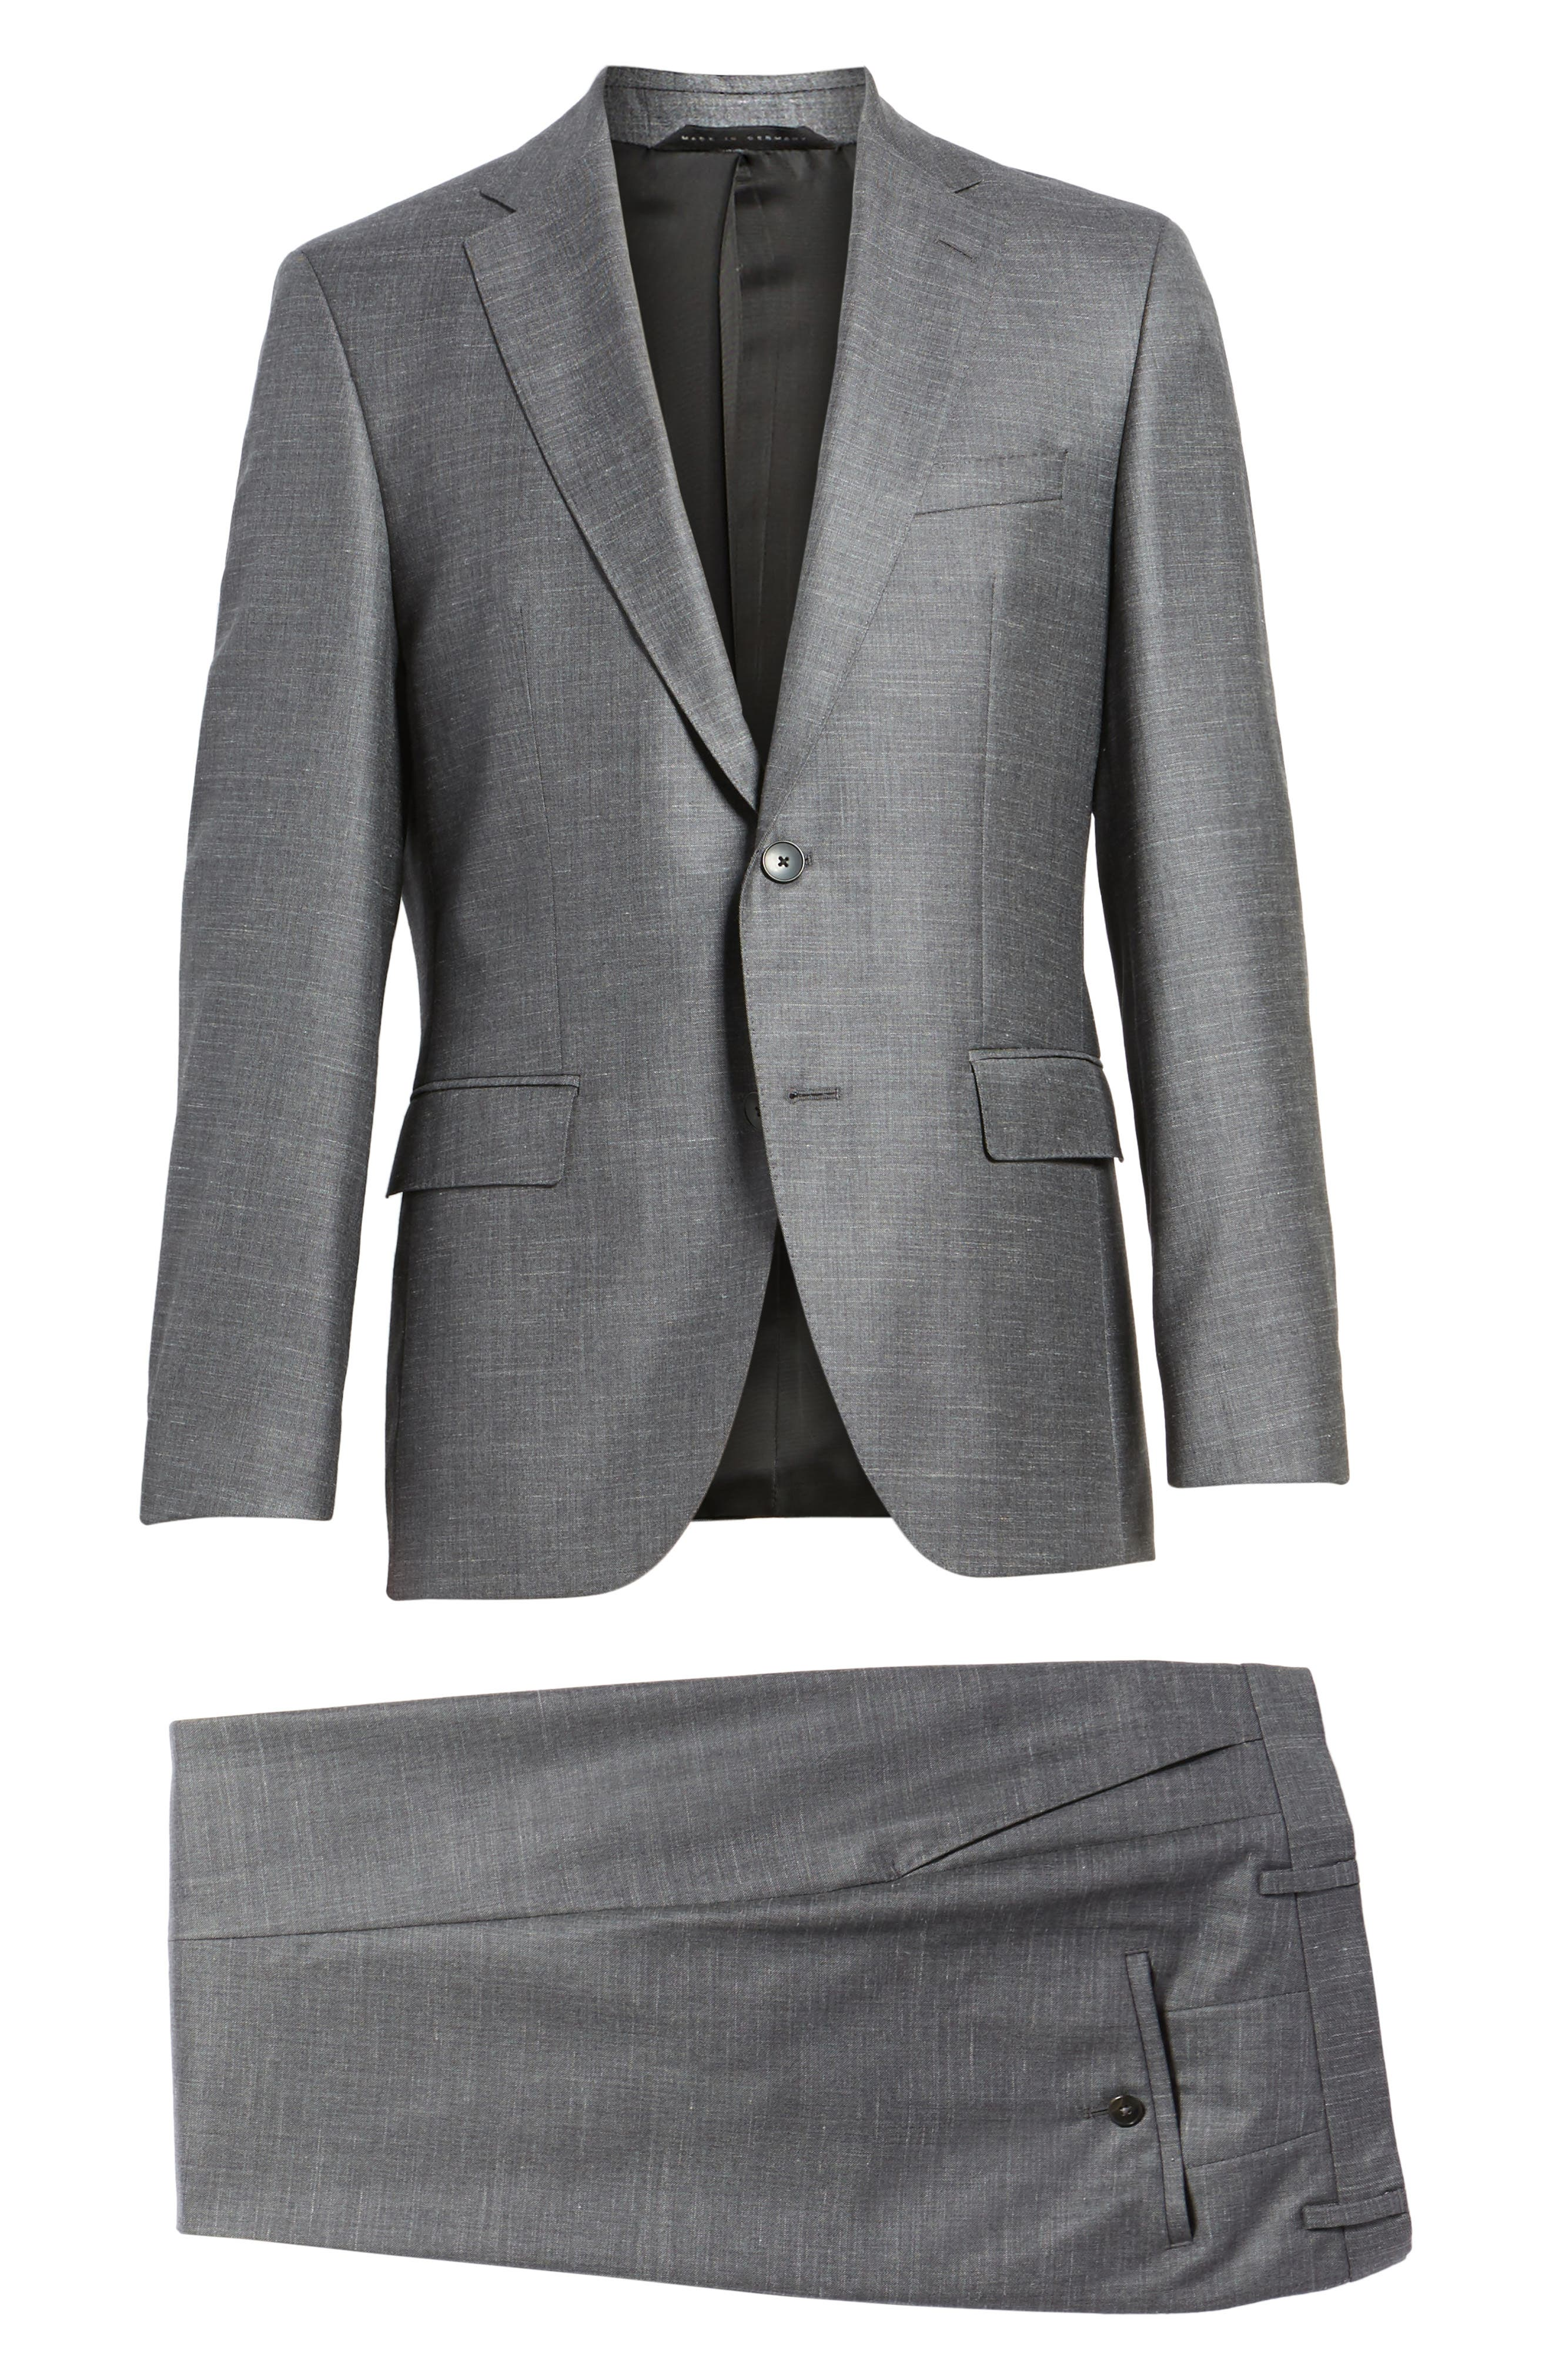 Johnstons/Lenon Classic Fit Solid Wool Blend Suit,                             Alternate thumbnail 8, color,                             Open Grey